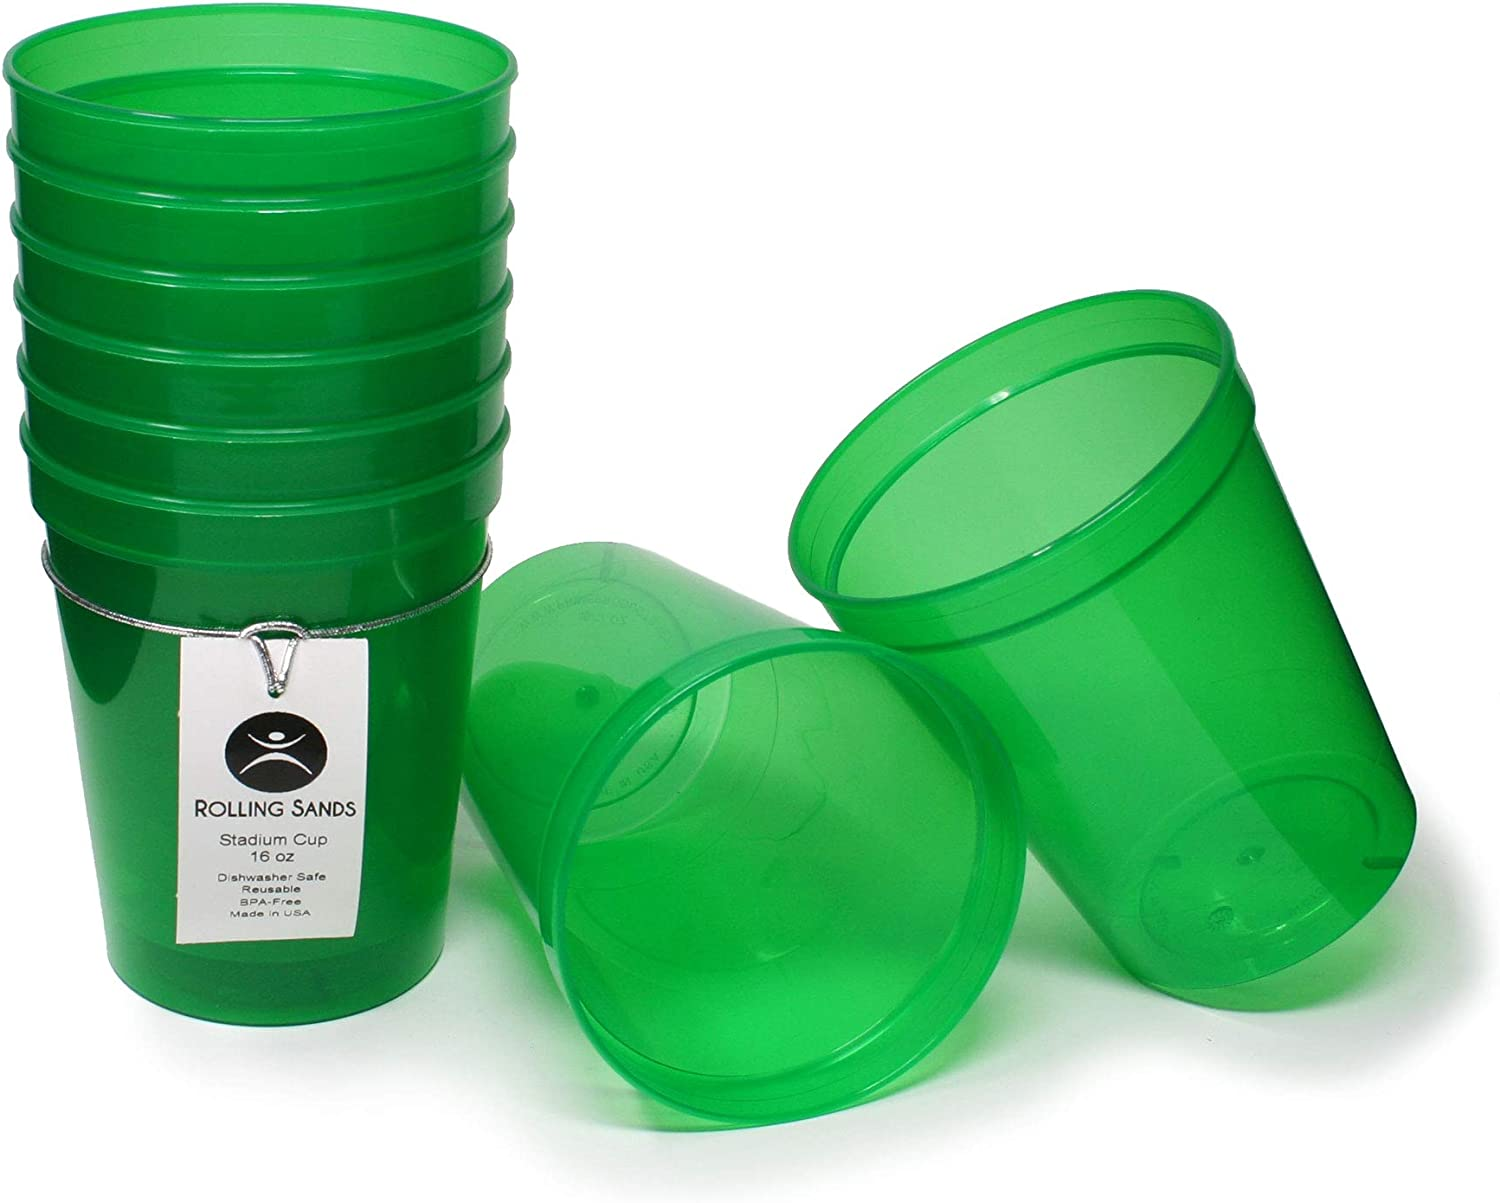 Rolling Sands 16 Ounce Reusable Plastic Stadium Cups Translucent Green, 8 Pack, Made in USA, BPA-Free Dishwasher Safe Plastic Tumblers